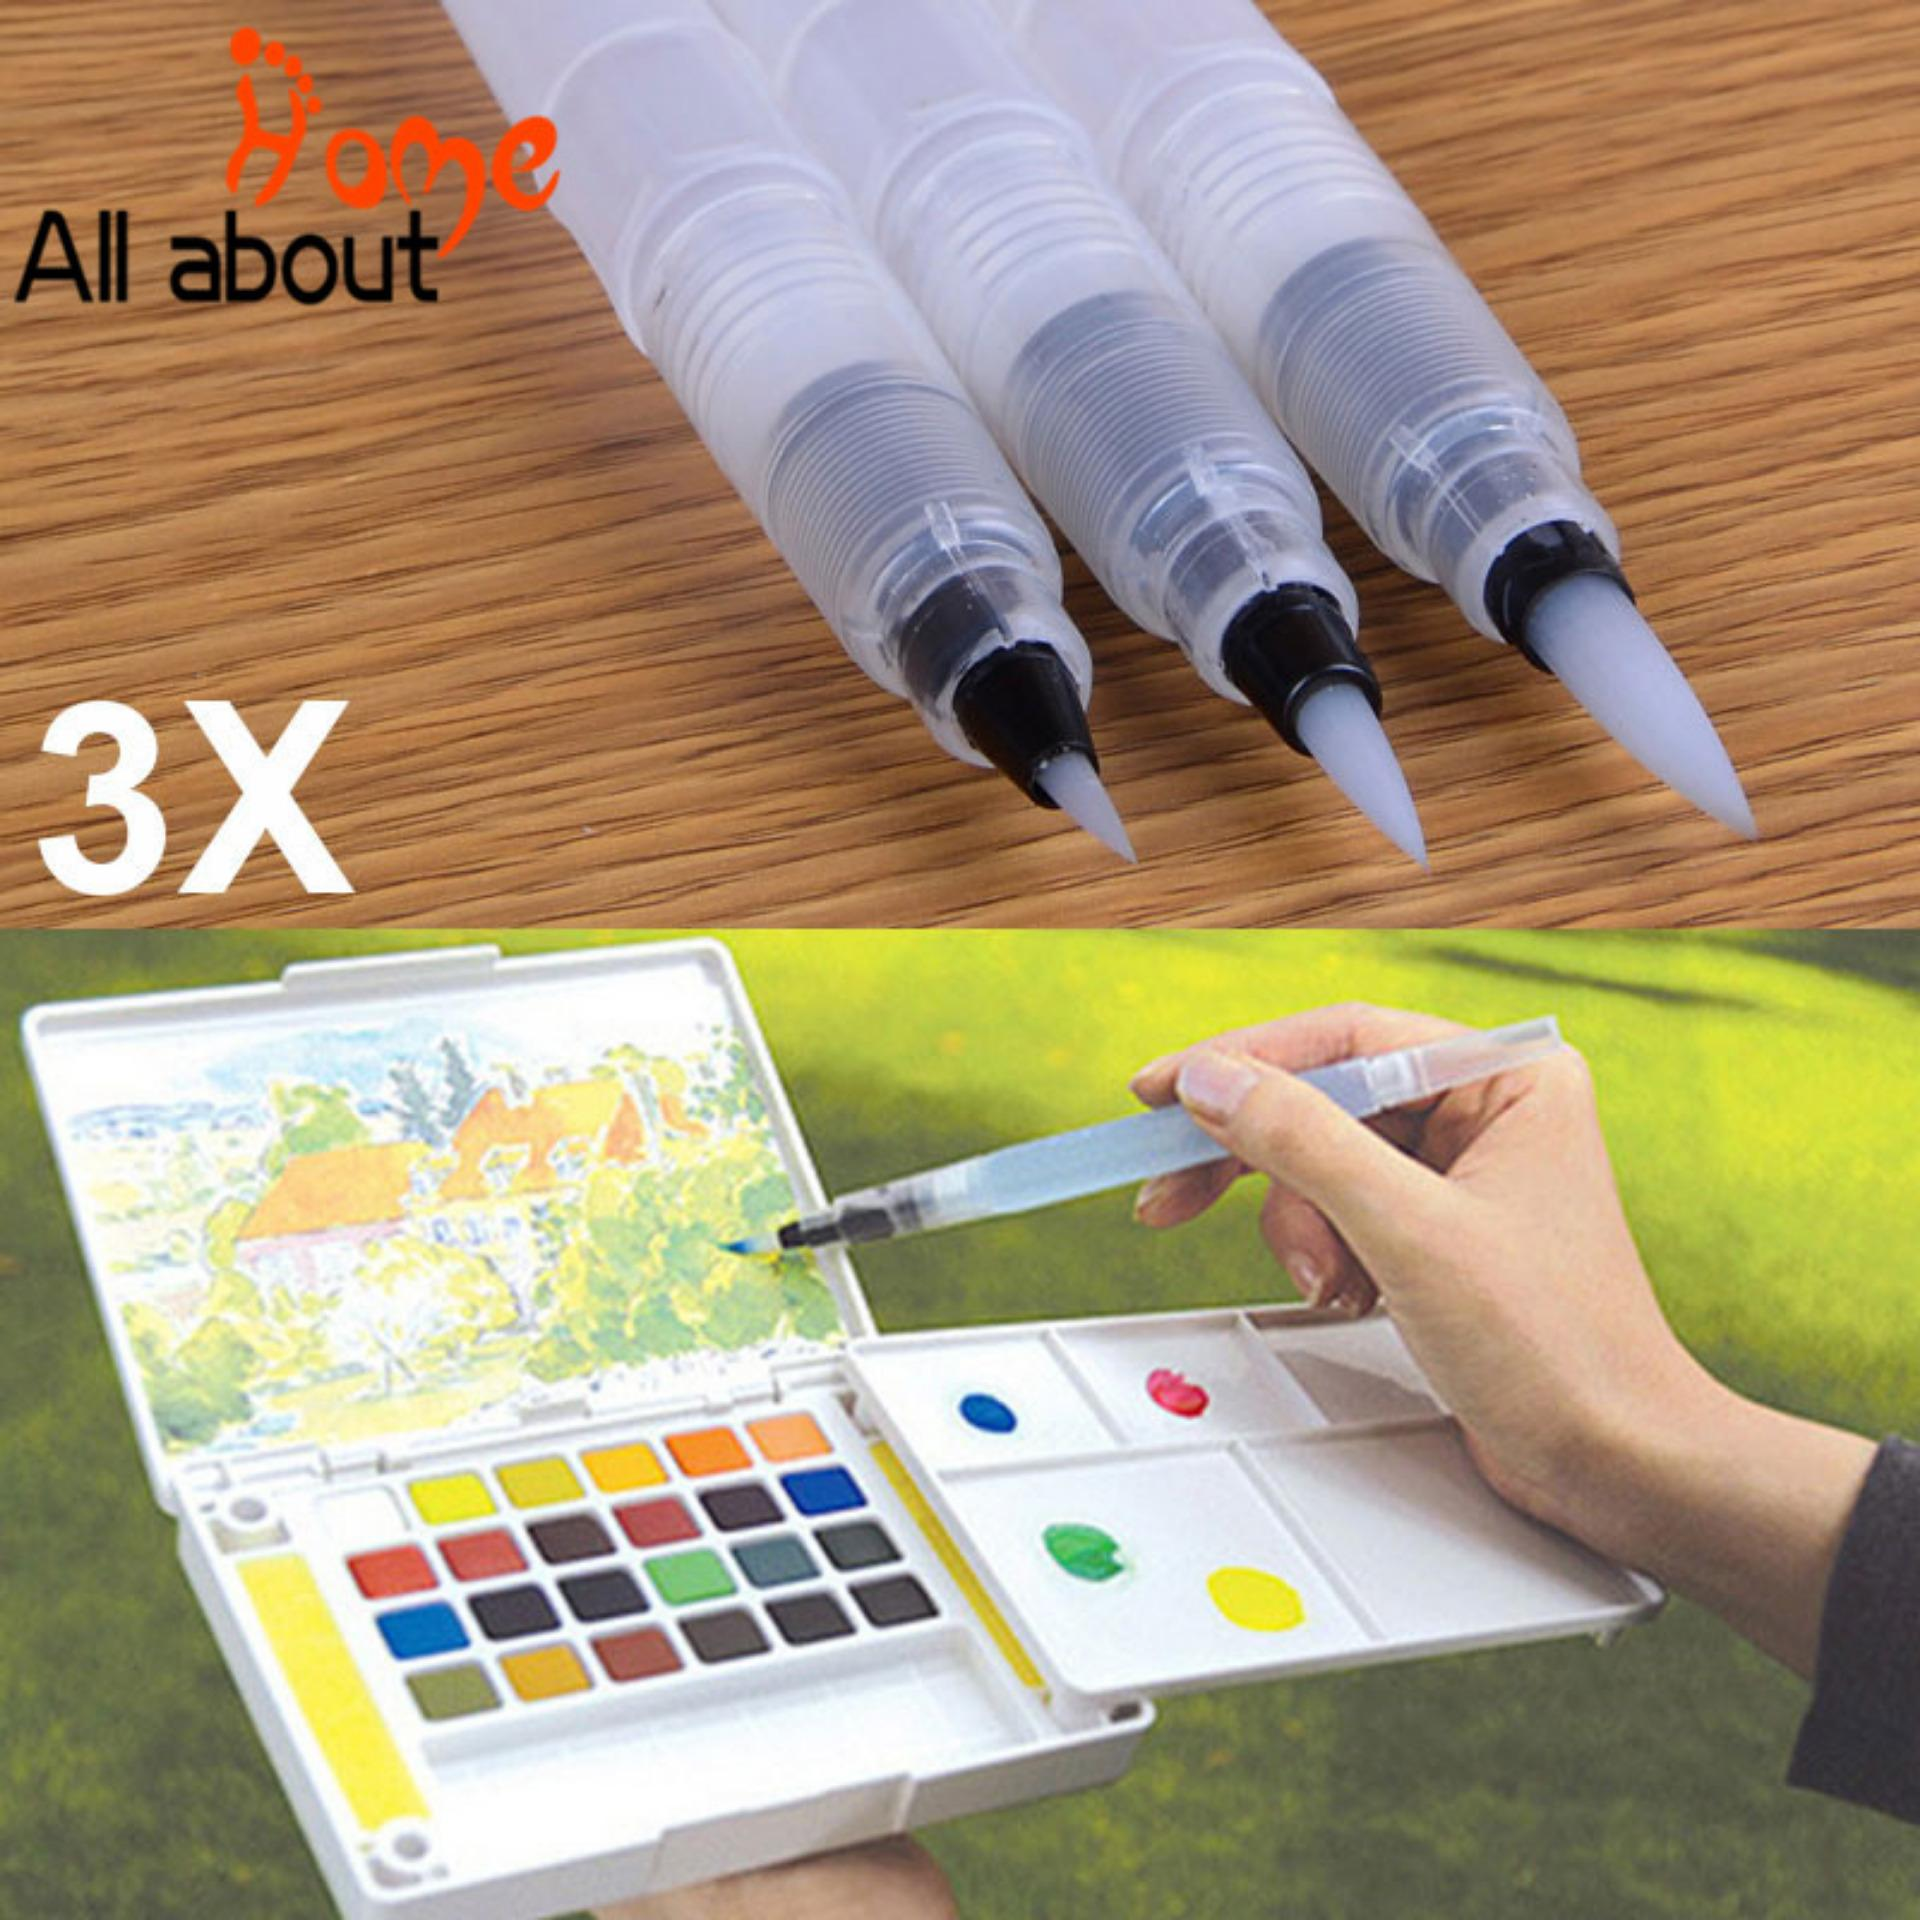 3 Pcs Refillable Ink Color Pen Water Brush Pen Office Stationery Refillable Ink Color Pen Water Brush Pen Office Stationery Size:l By All About Home.